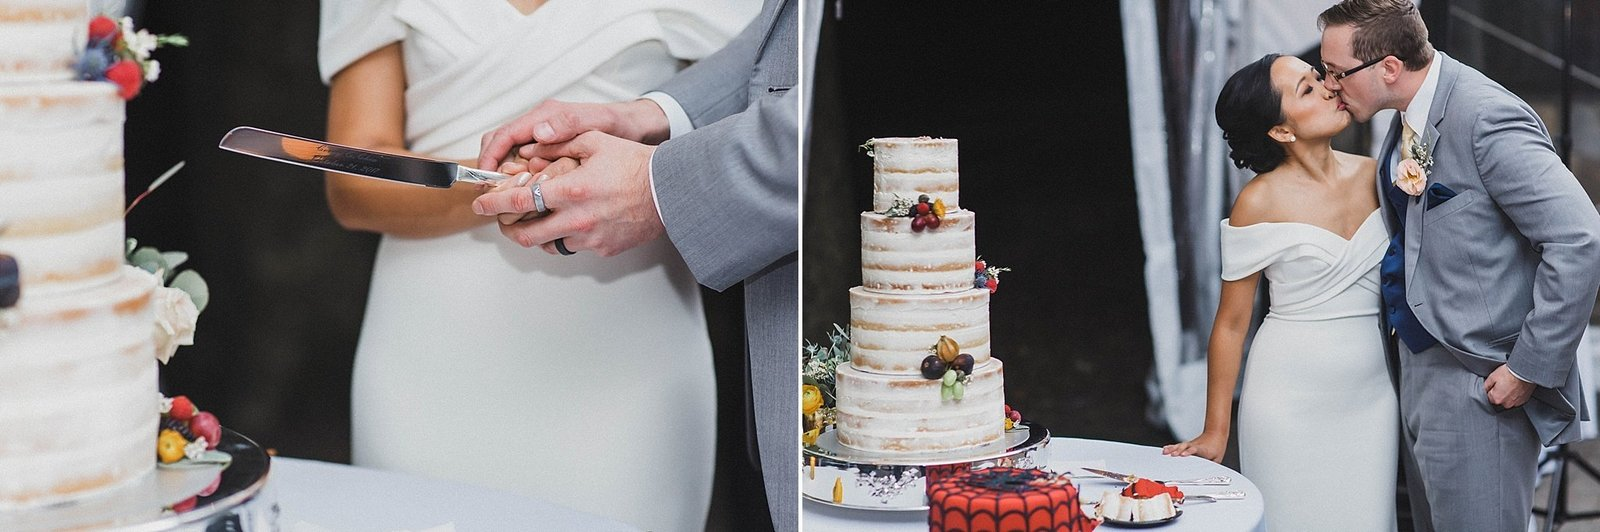 M Harris Studios_Braehead Manor_VA Wedding Photographer_cutting tieredwedding cake